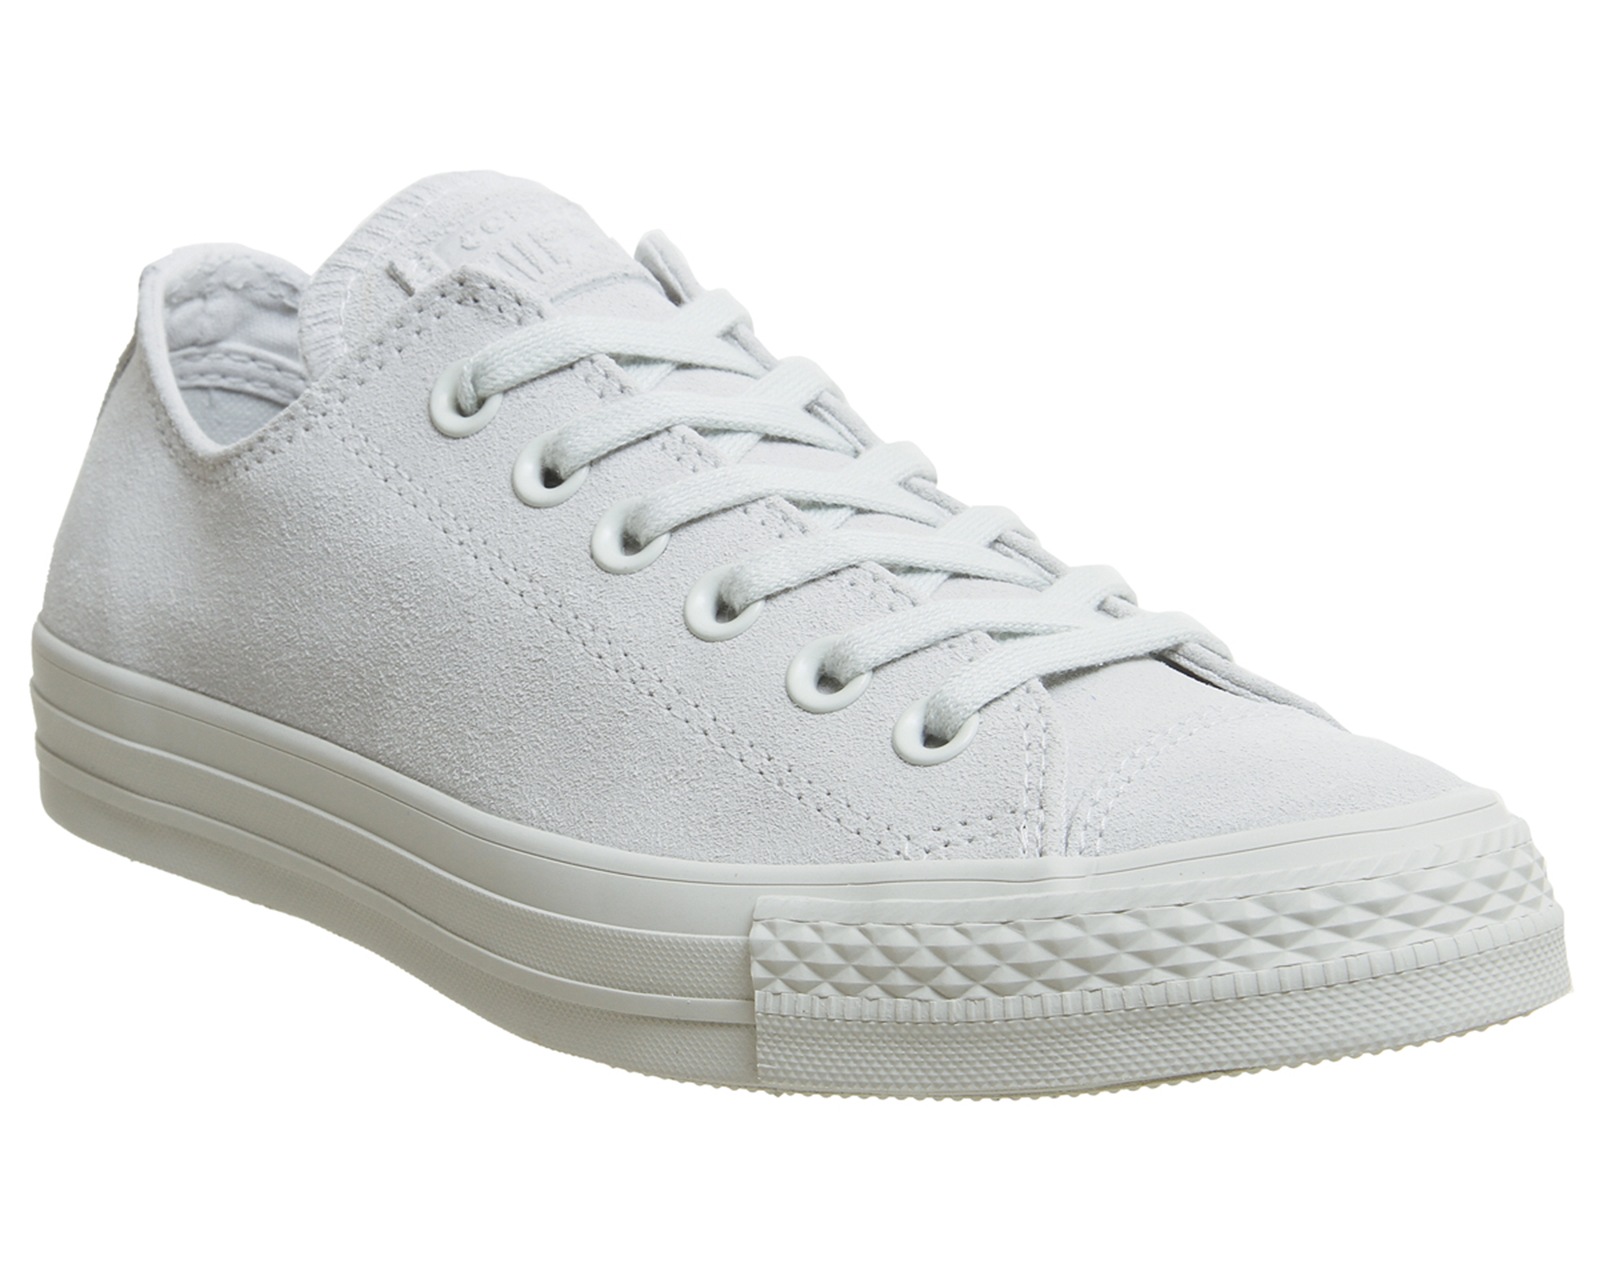 eb6f958d153e Sentinel Converse Converse All Star Low Trainers Light Silver Grey Trainers  Shoes